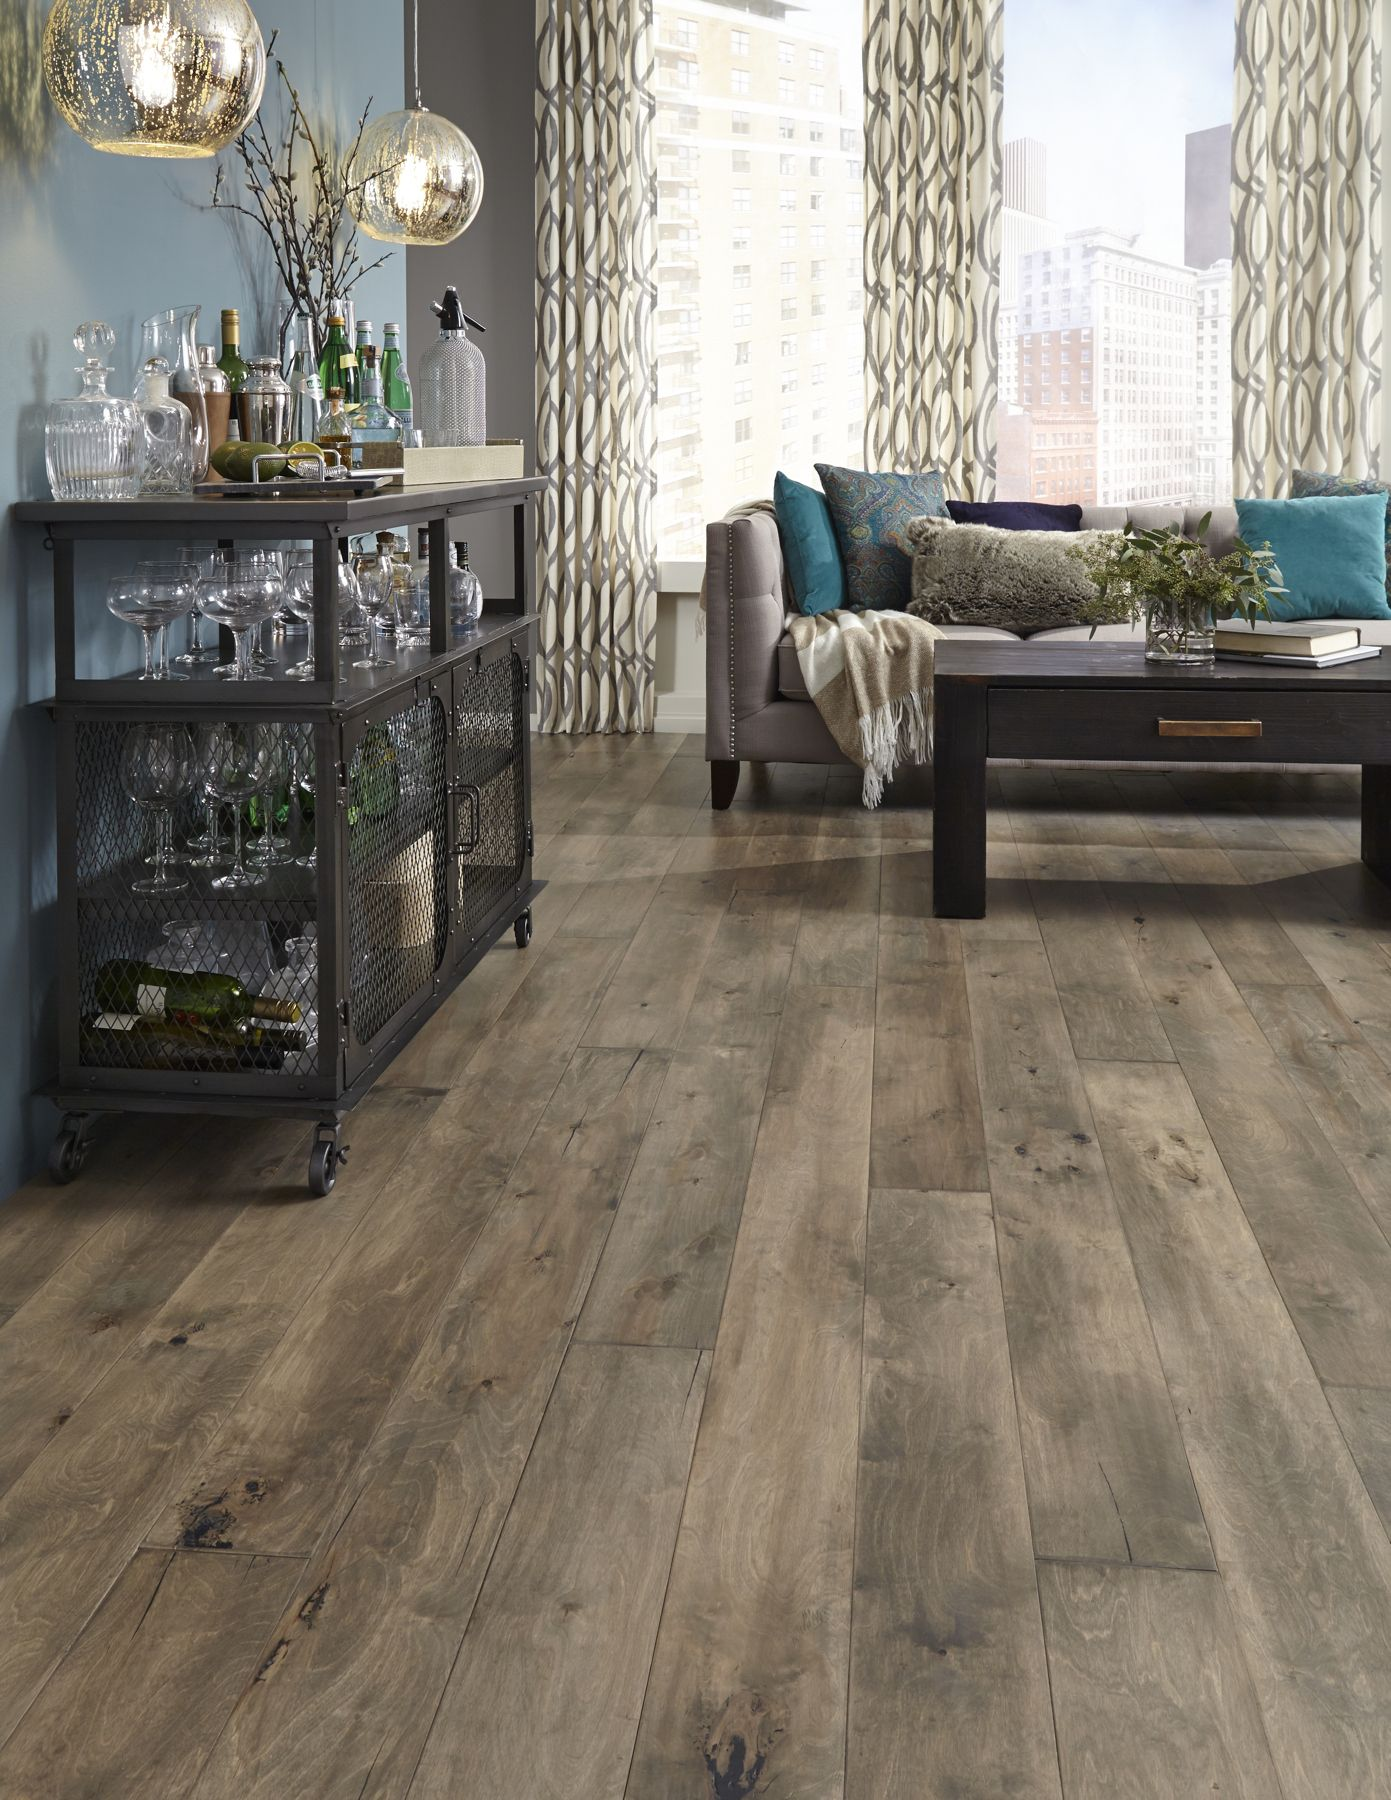 Hot Product Pick--Iberian Hazelwood, a rustic, refined hardwood ...